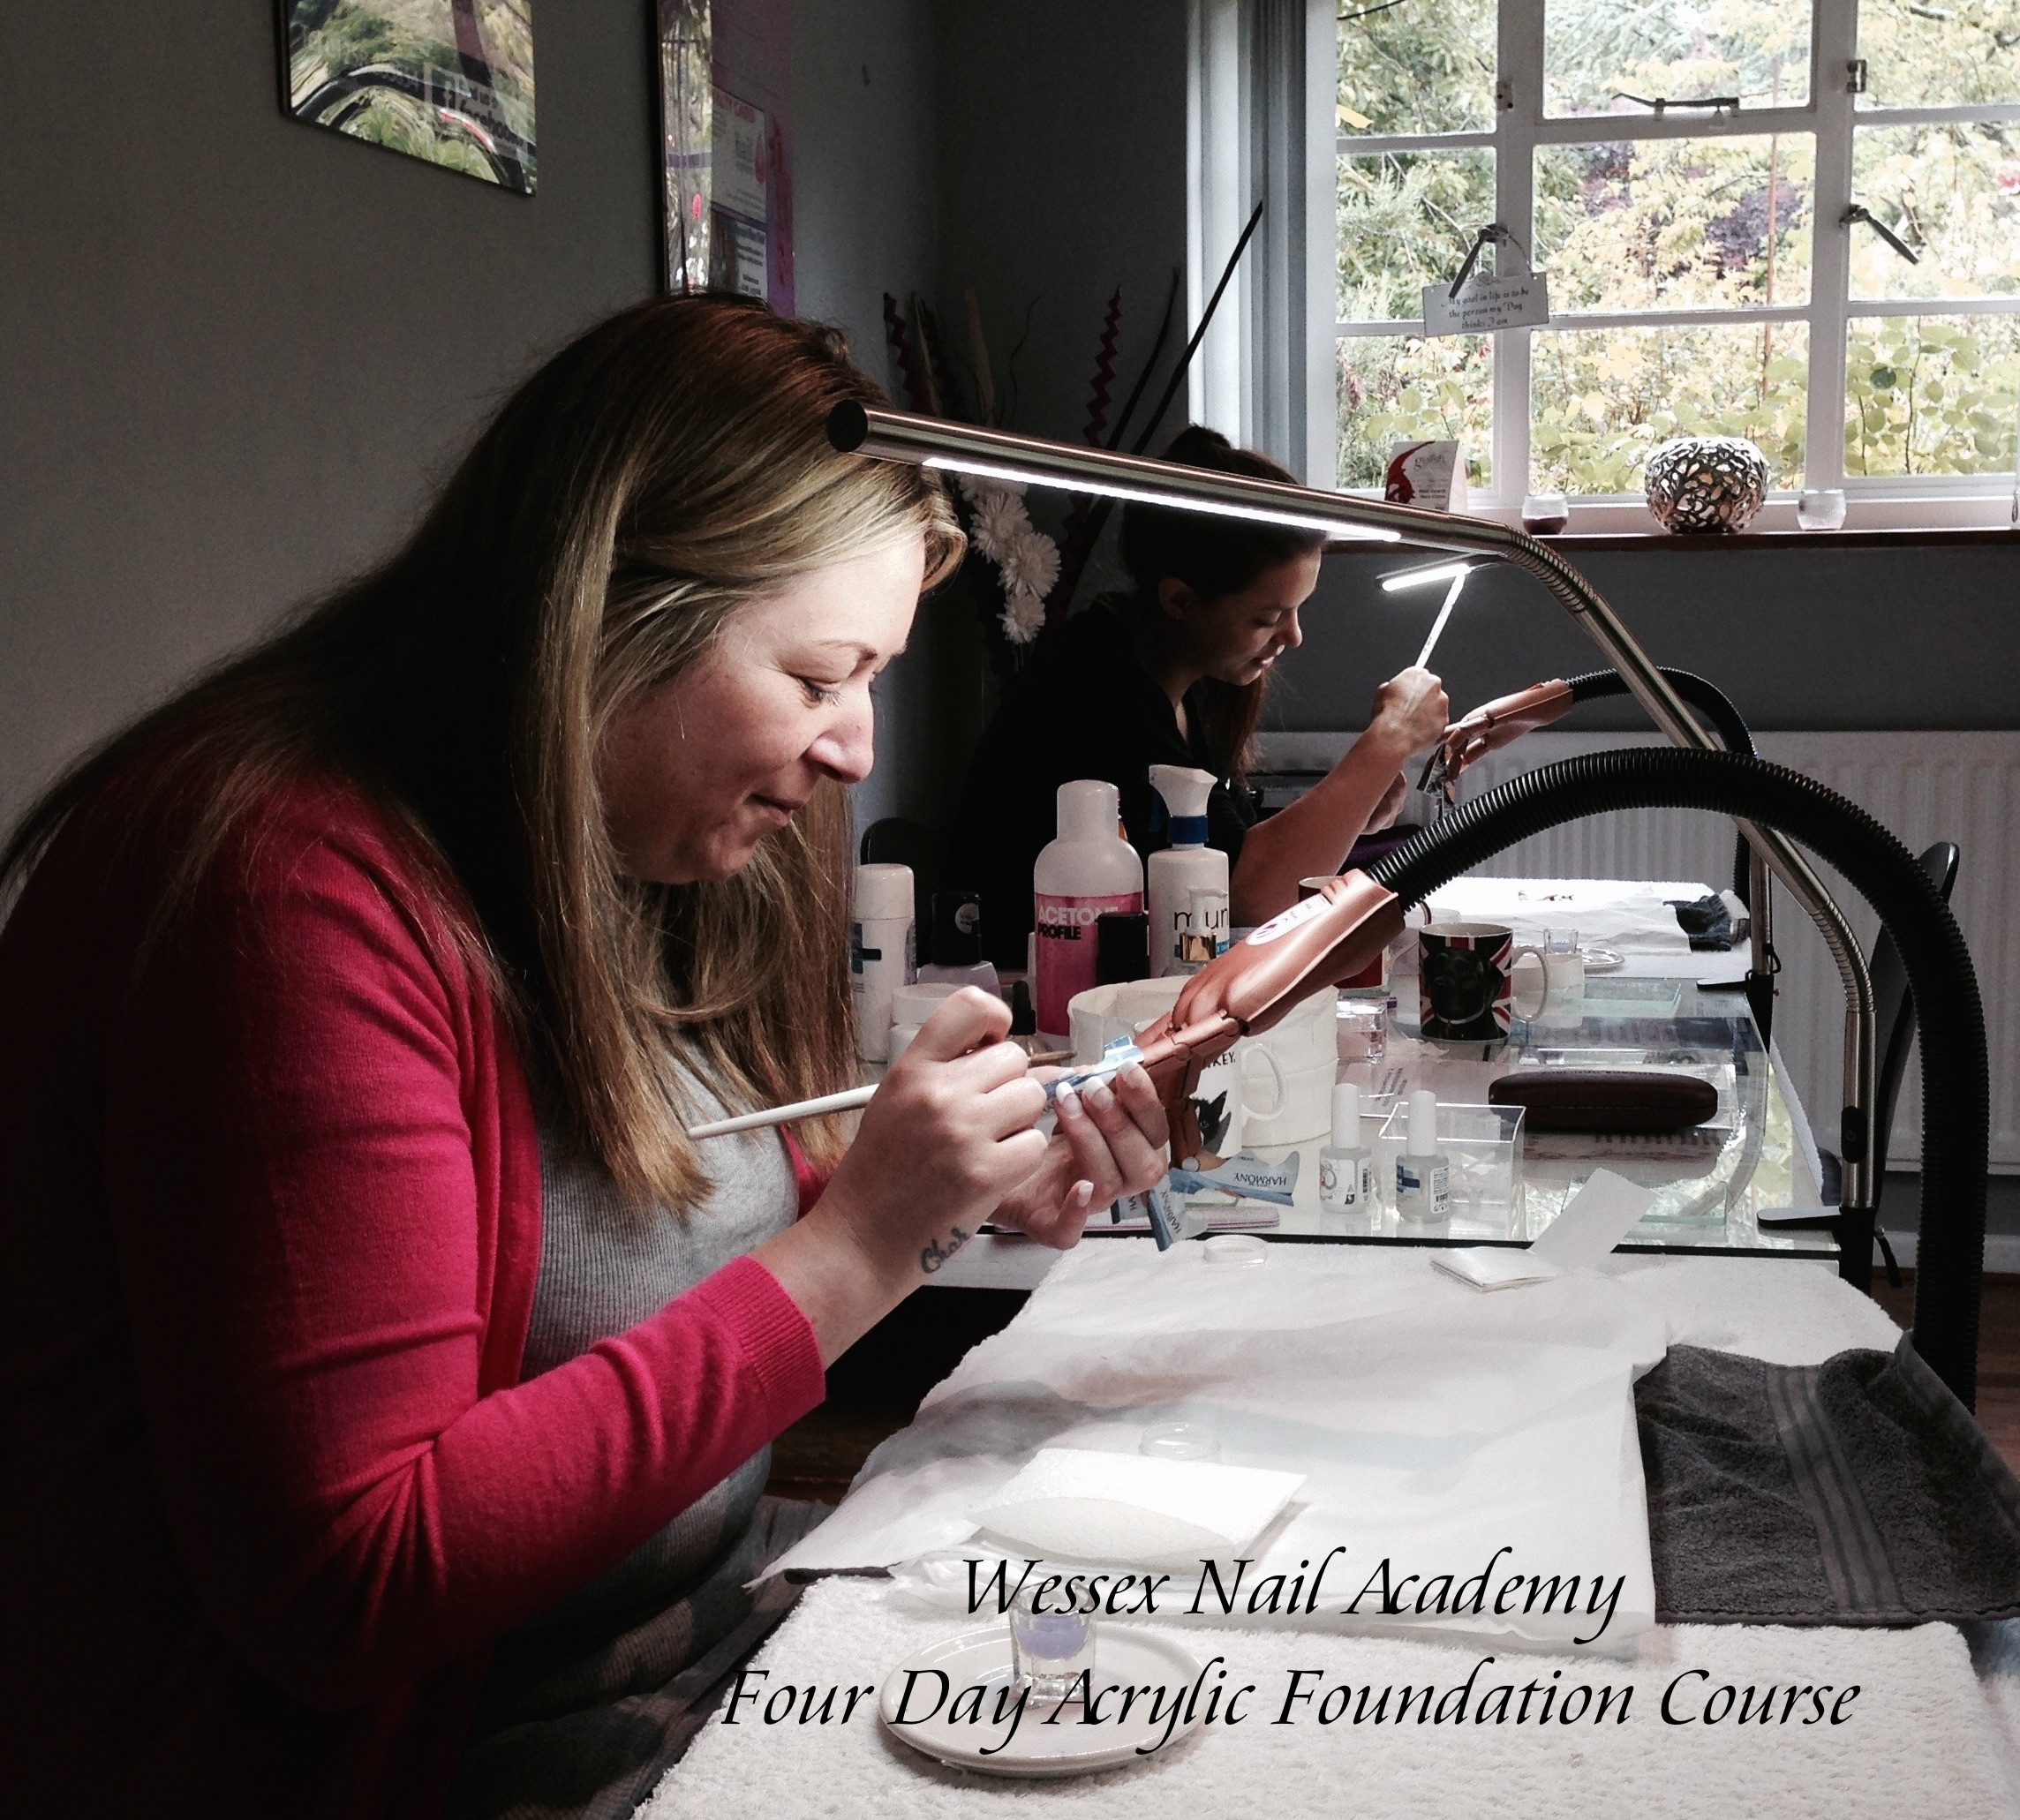 Four Day Acrylic Foundation Courses, Nail extension training, nail training course, Wessex Nail Academy Okeford Fitzpaine, Dorset